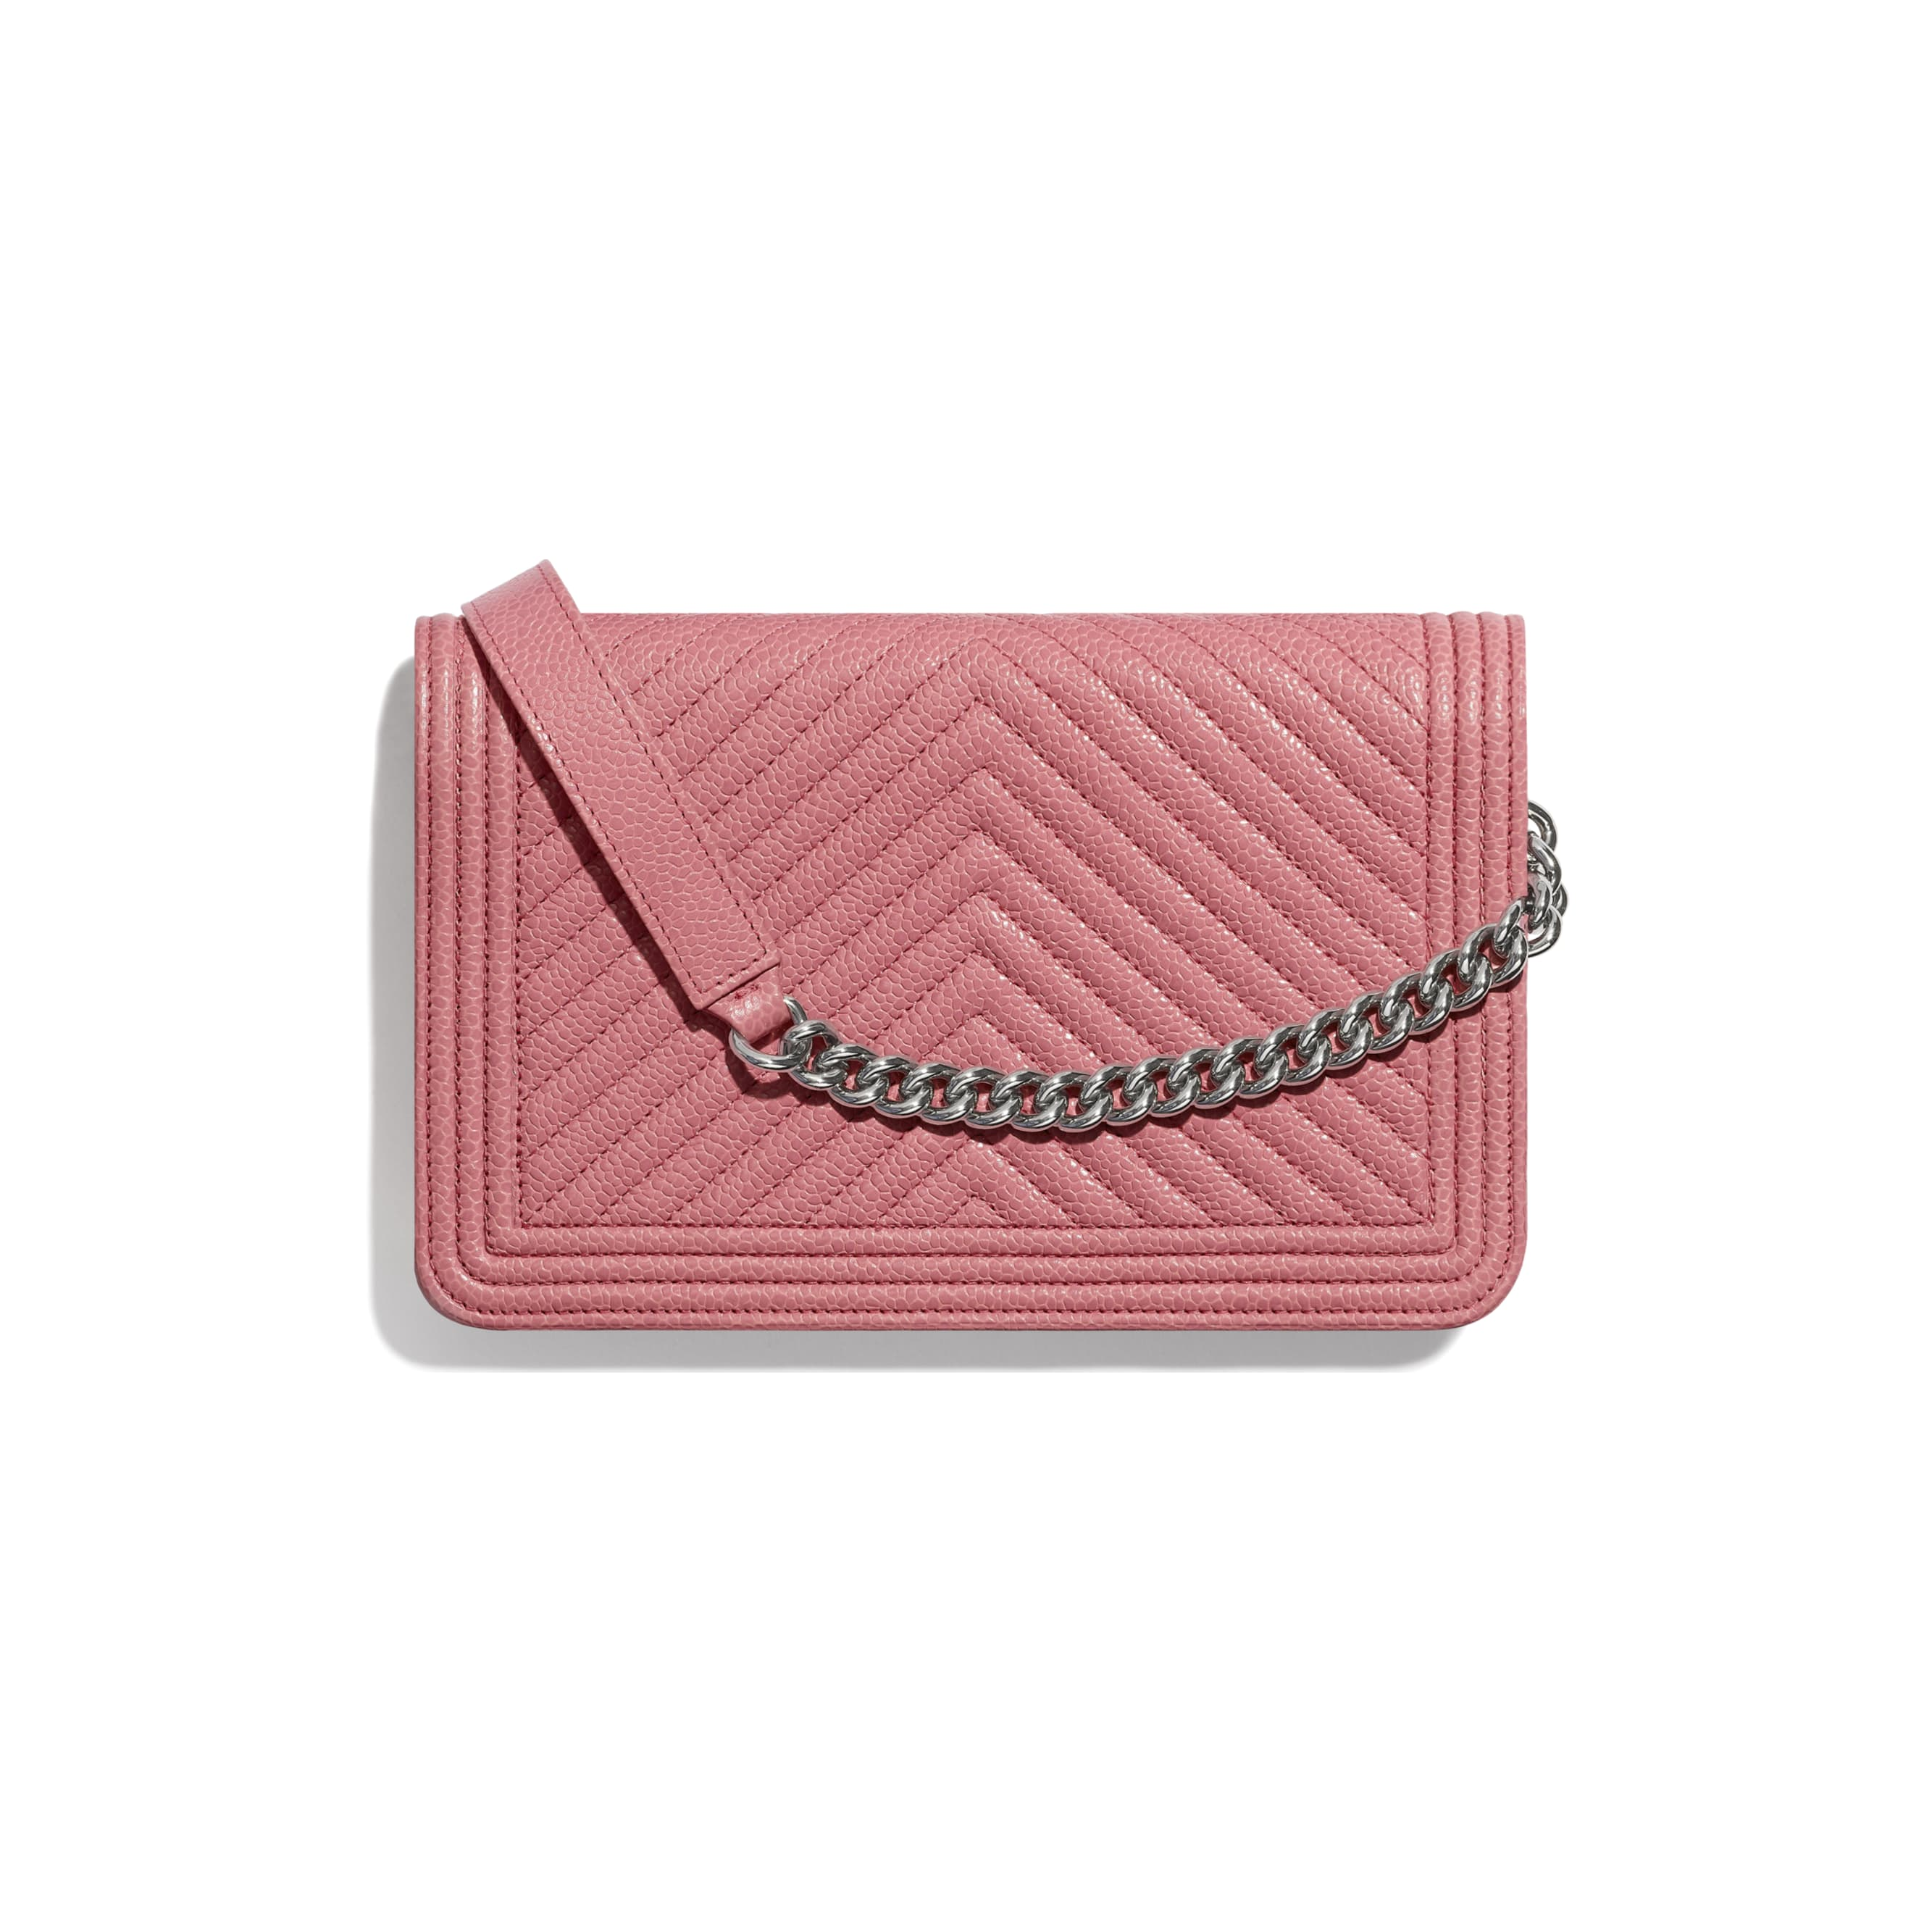 BOY CHANEL Wallet On Chain - Pink - Shiny Grained Calfskin & Silver-Tone Metal - Alternative view - see standard sized version